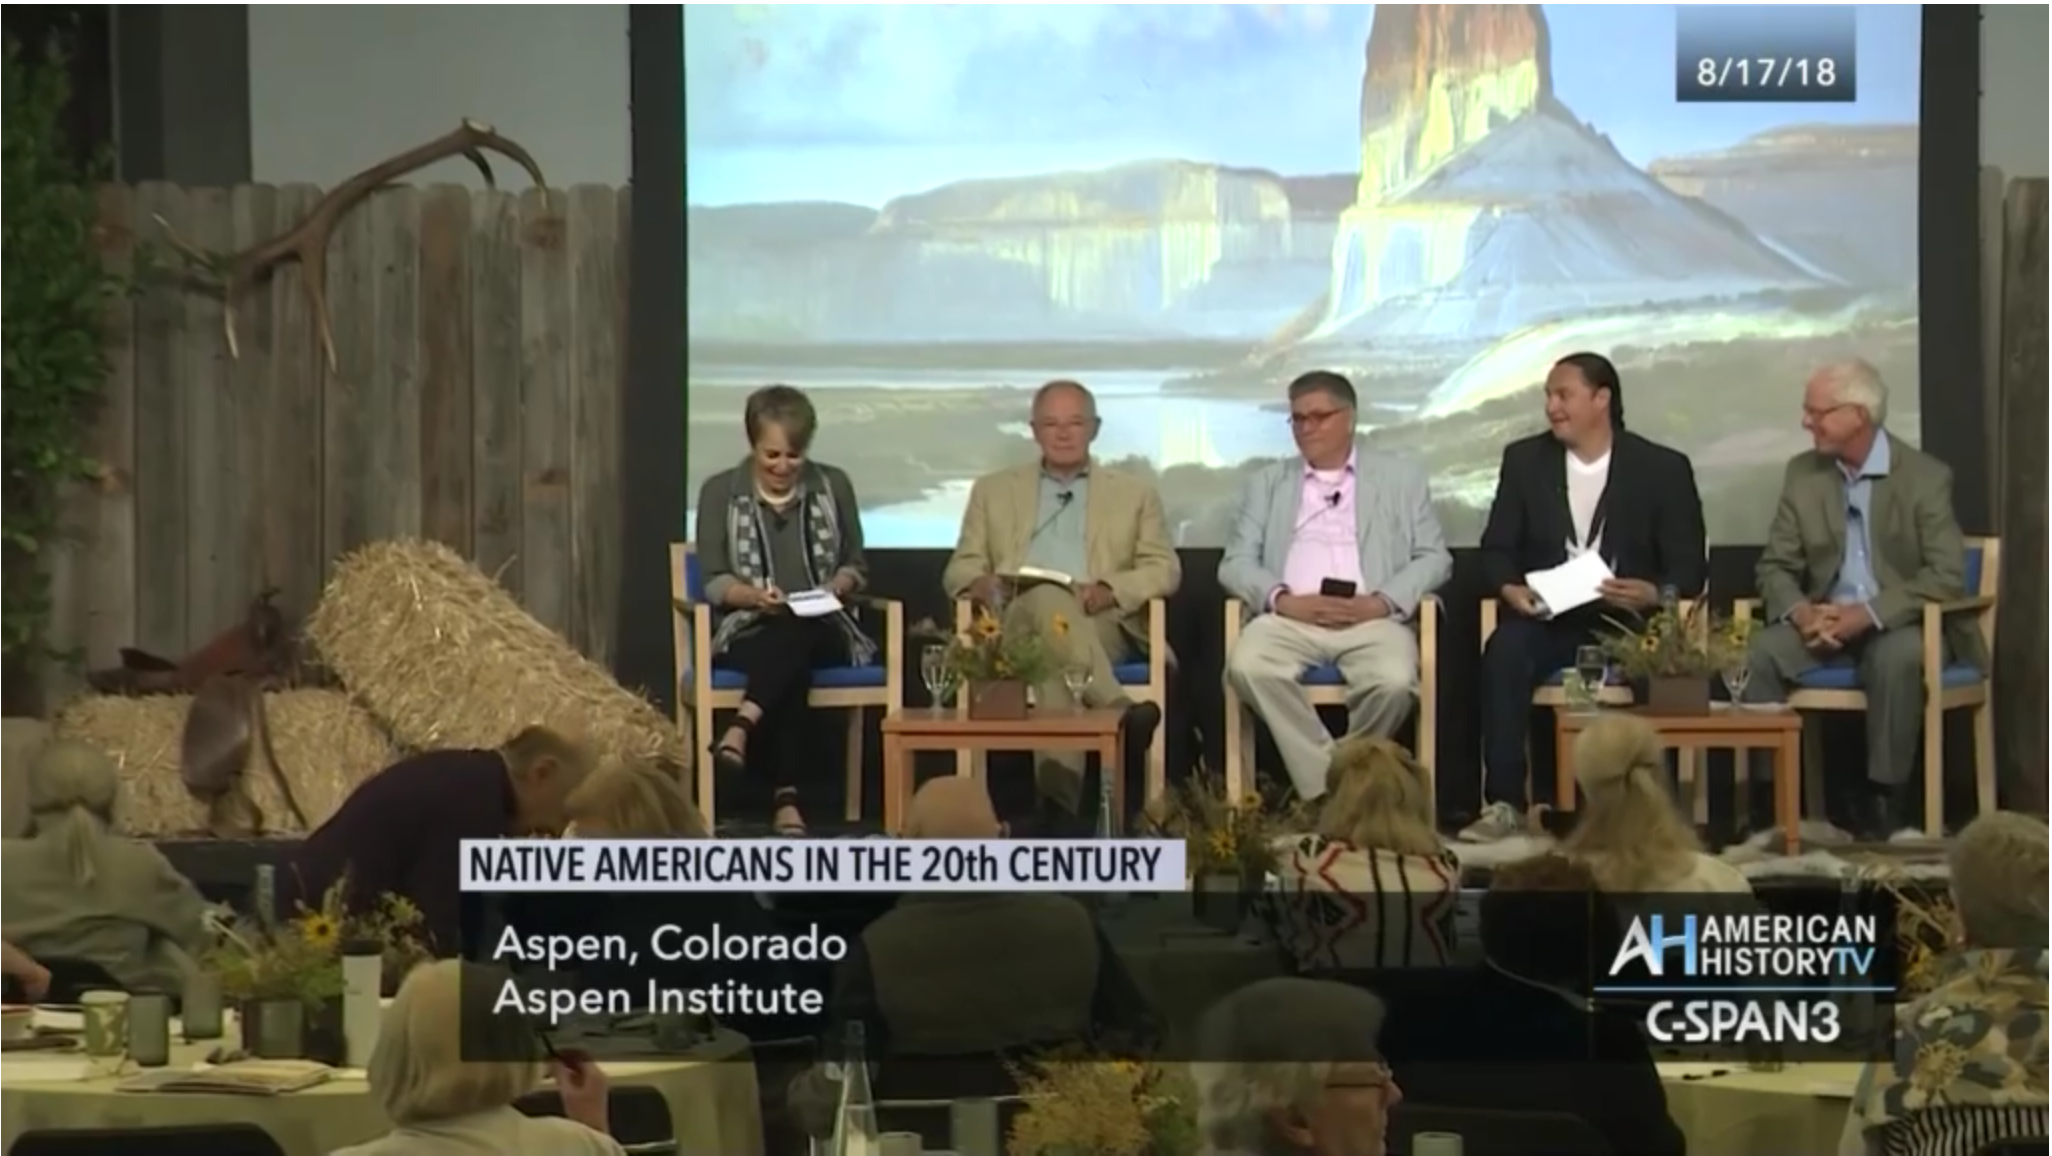 Martha Sandweiss moderates a panel with Terry Anderson, Mark Trahant, Sheldon Spotted Elk, and Mark Varien.